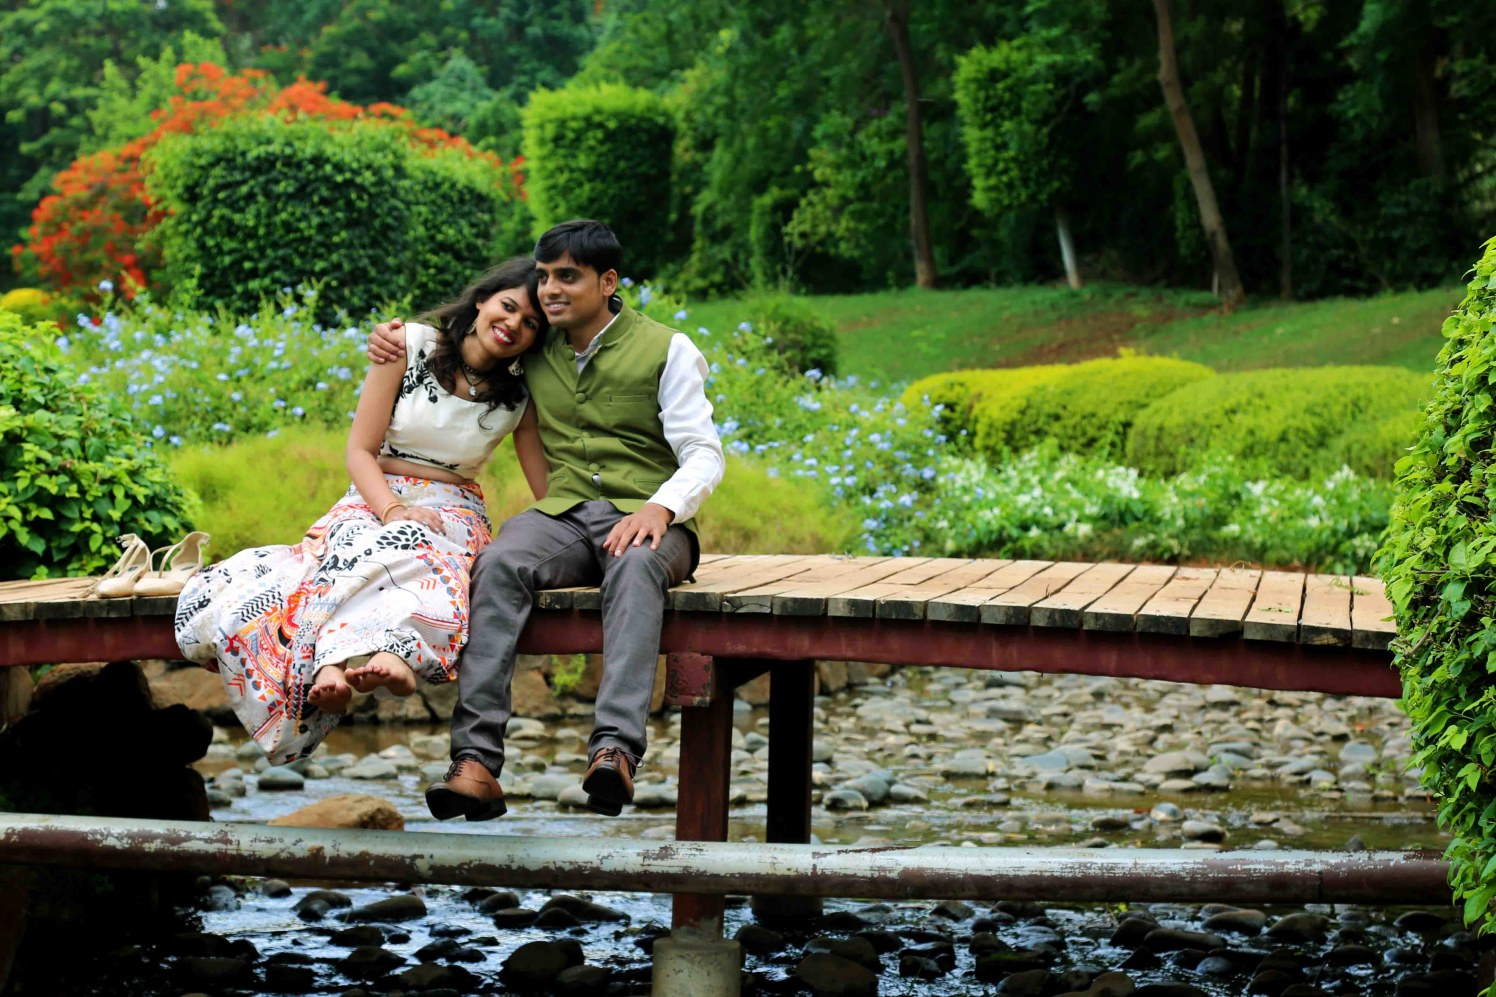 Picturesque Garden Backdrop For Photoshoot of Bride and Groom To-Be by Rushil Jadhav Wedding-photography | Weddings Photos & Ideas